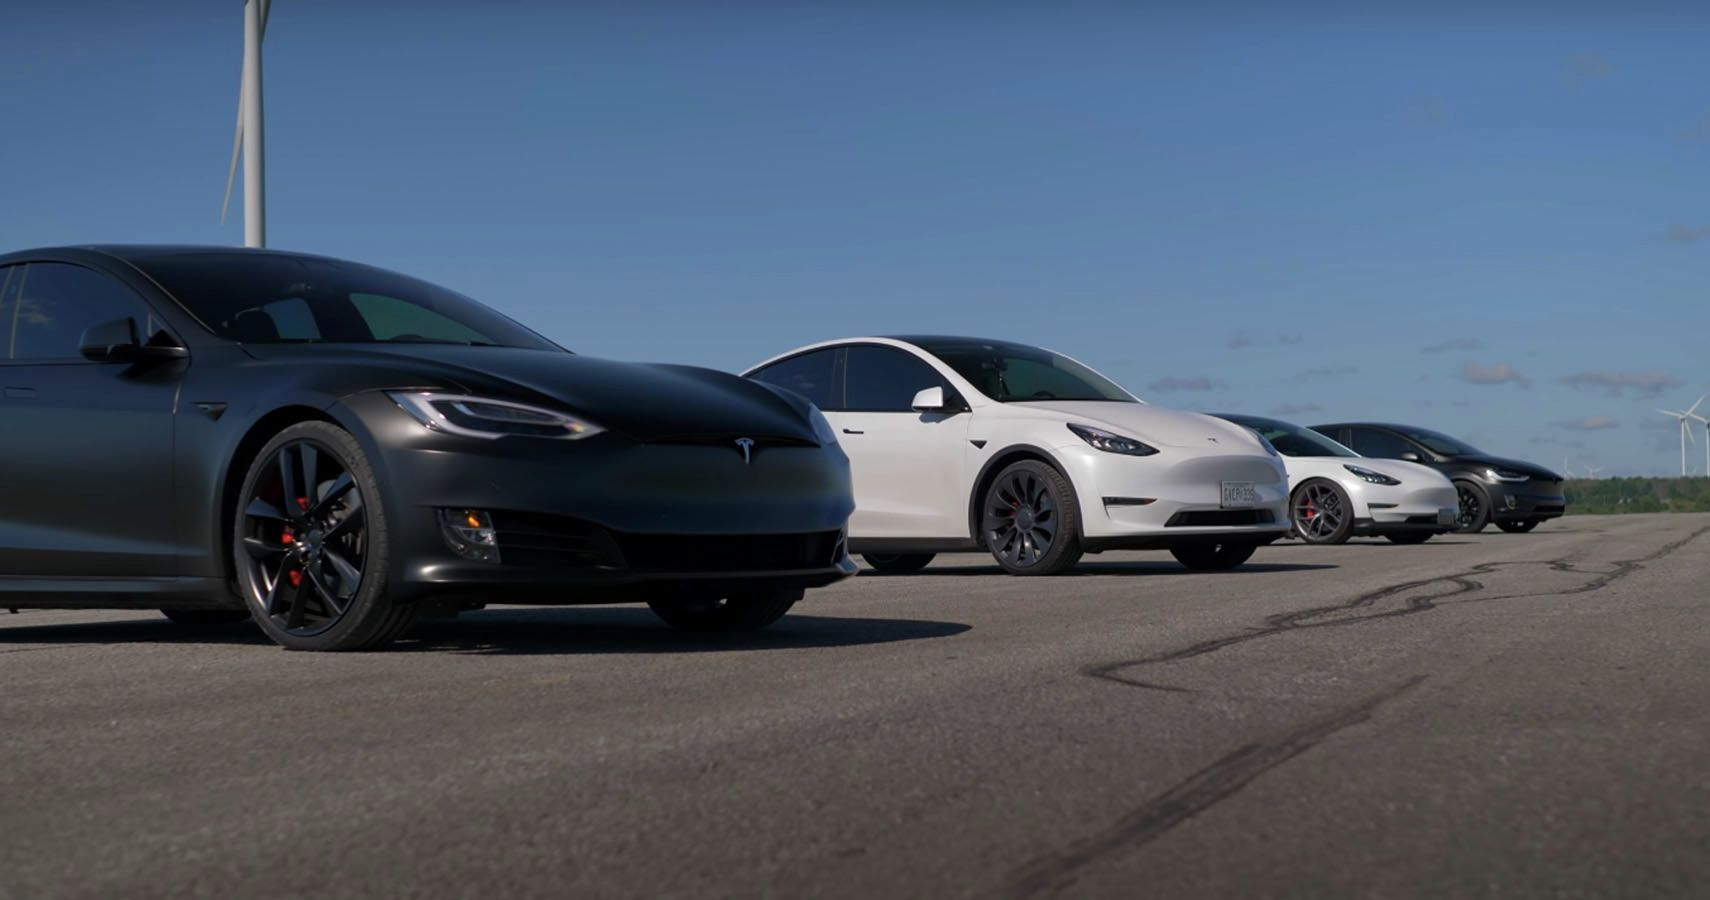 Watch The S3XY Drag Race: All Four Tesla Models Hit The Strip